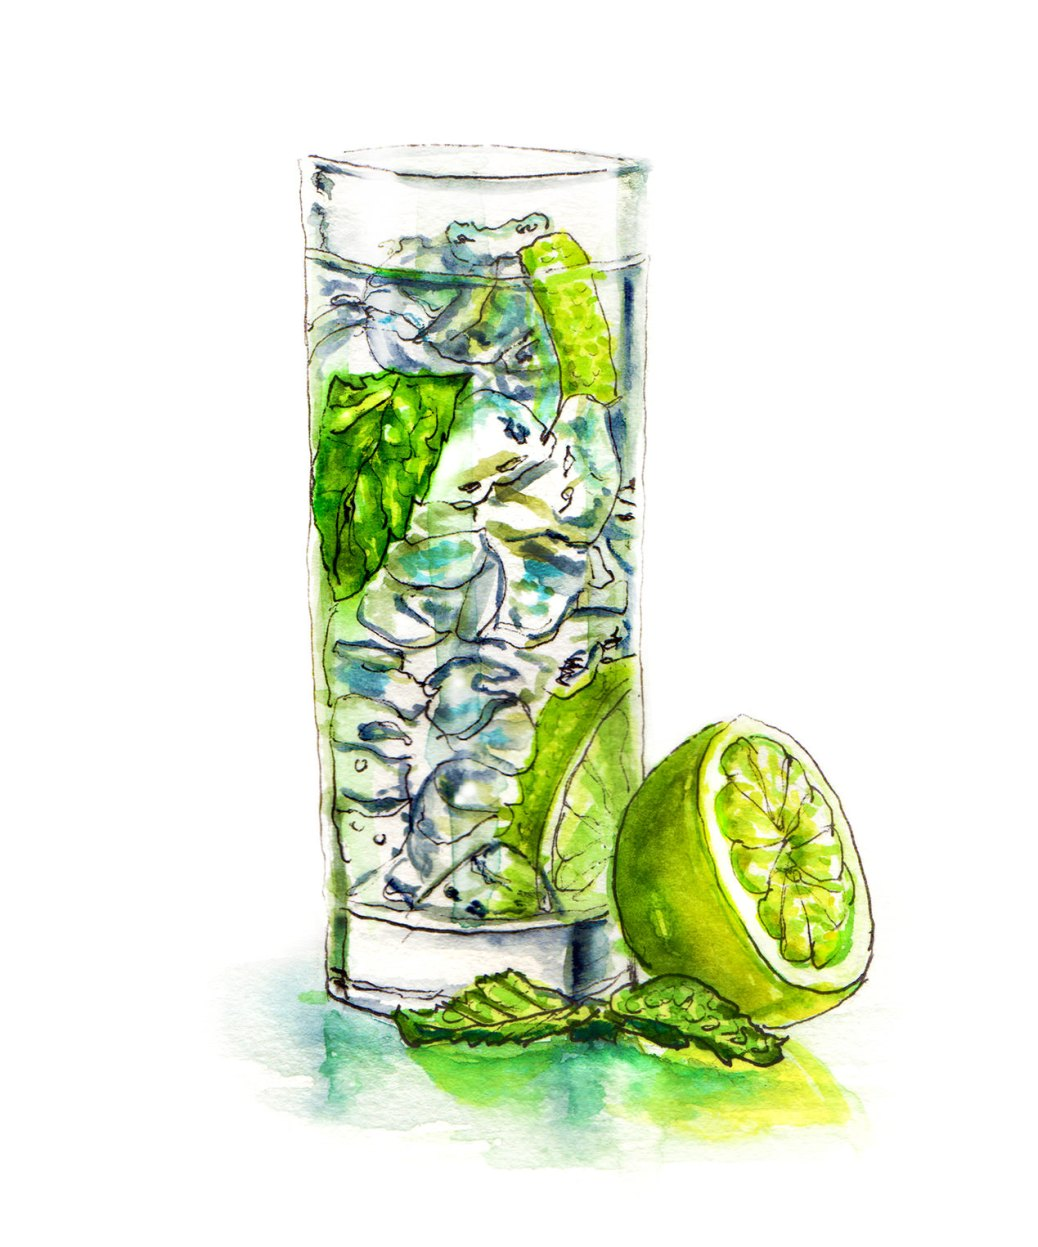 Day 29 - #WorldWatercolorGroup - Limes and Ice With Glass and Mint Mohito - #doodlewash